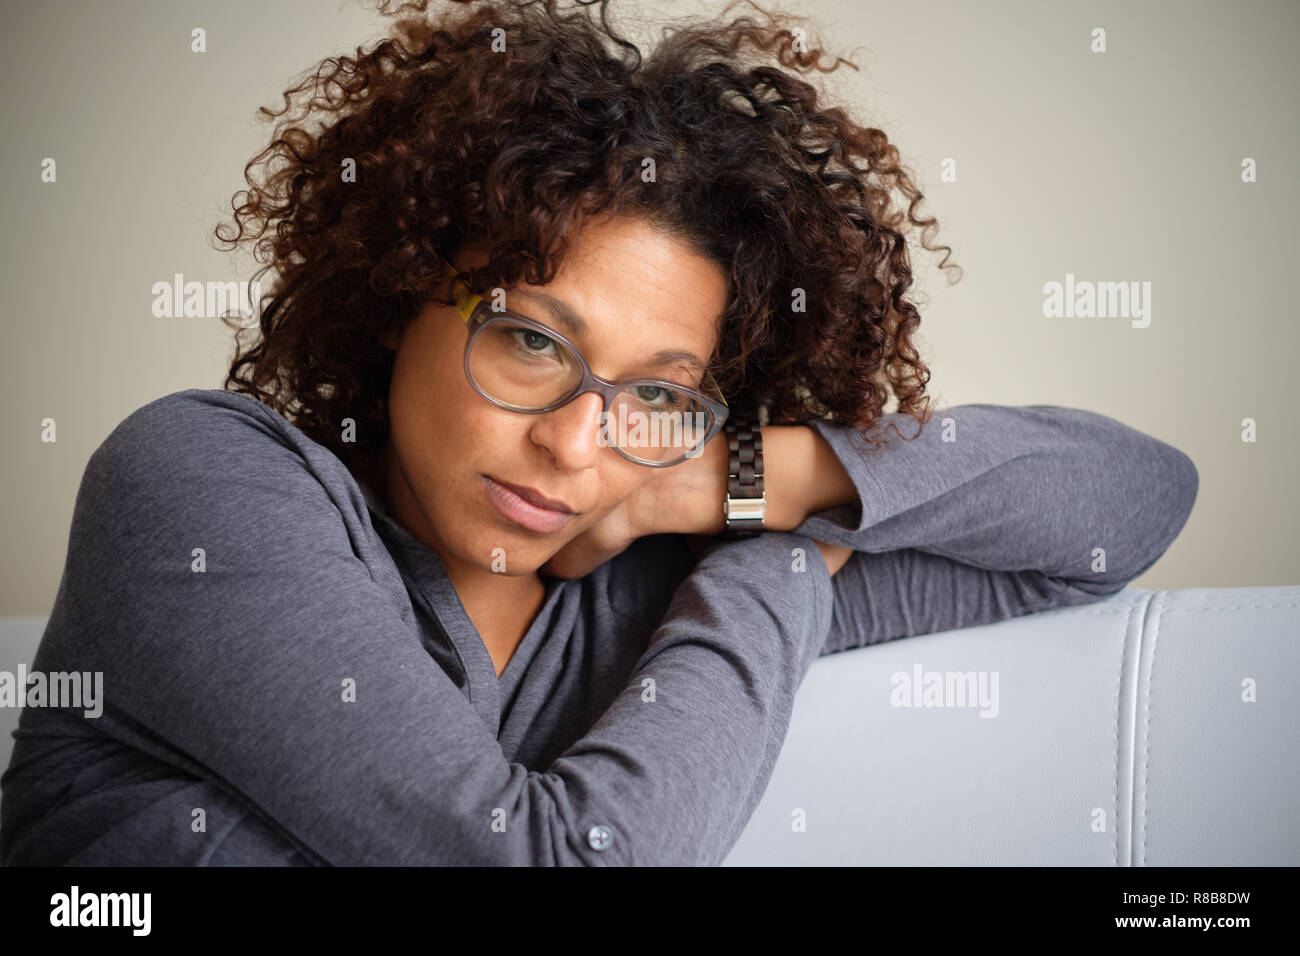 Black woman can't get over relationship breakup - Stock Image